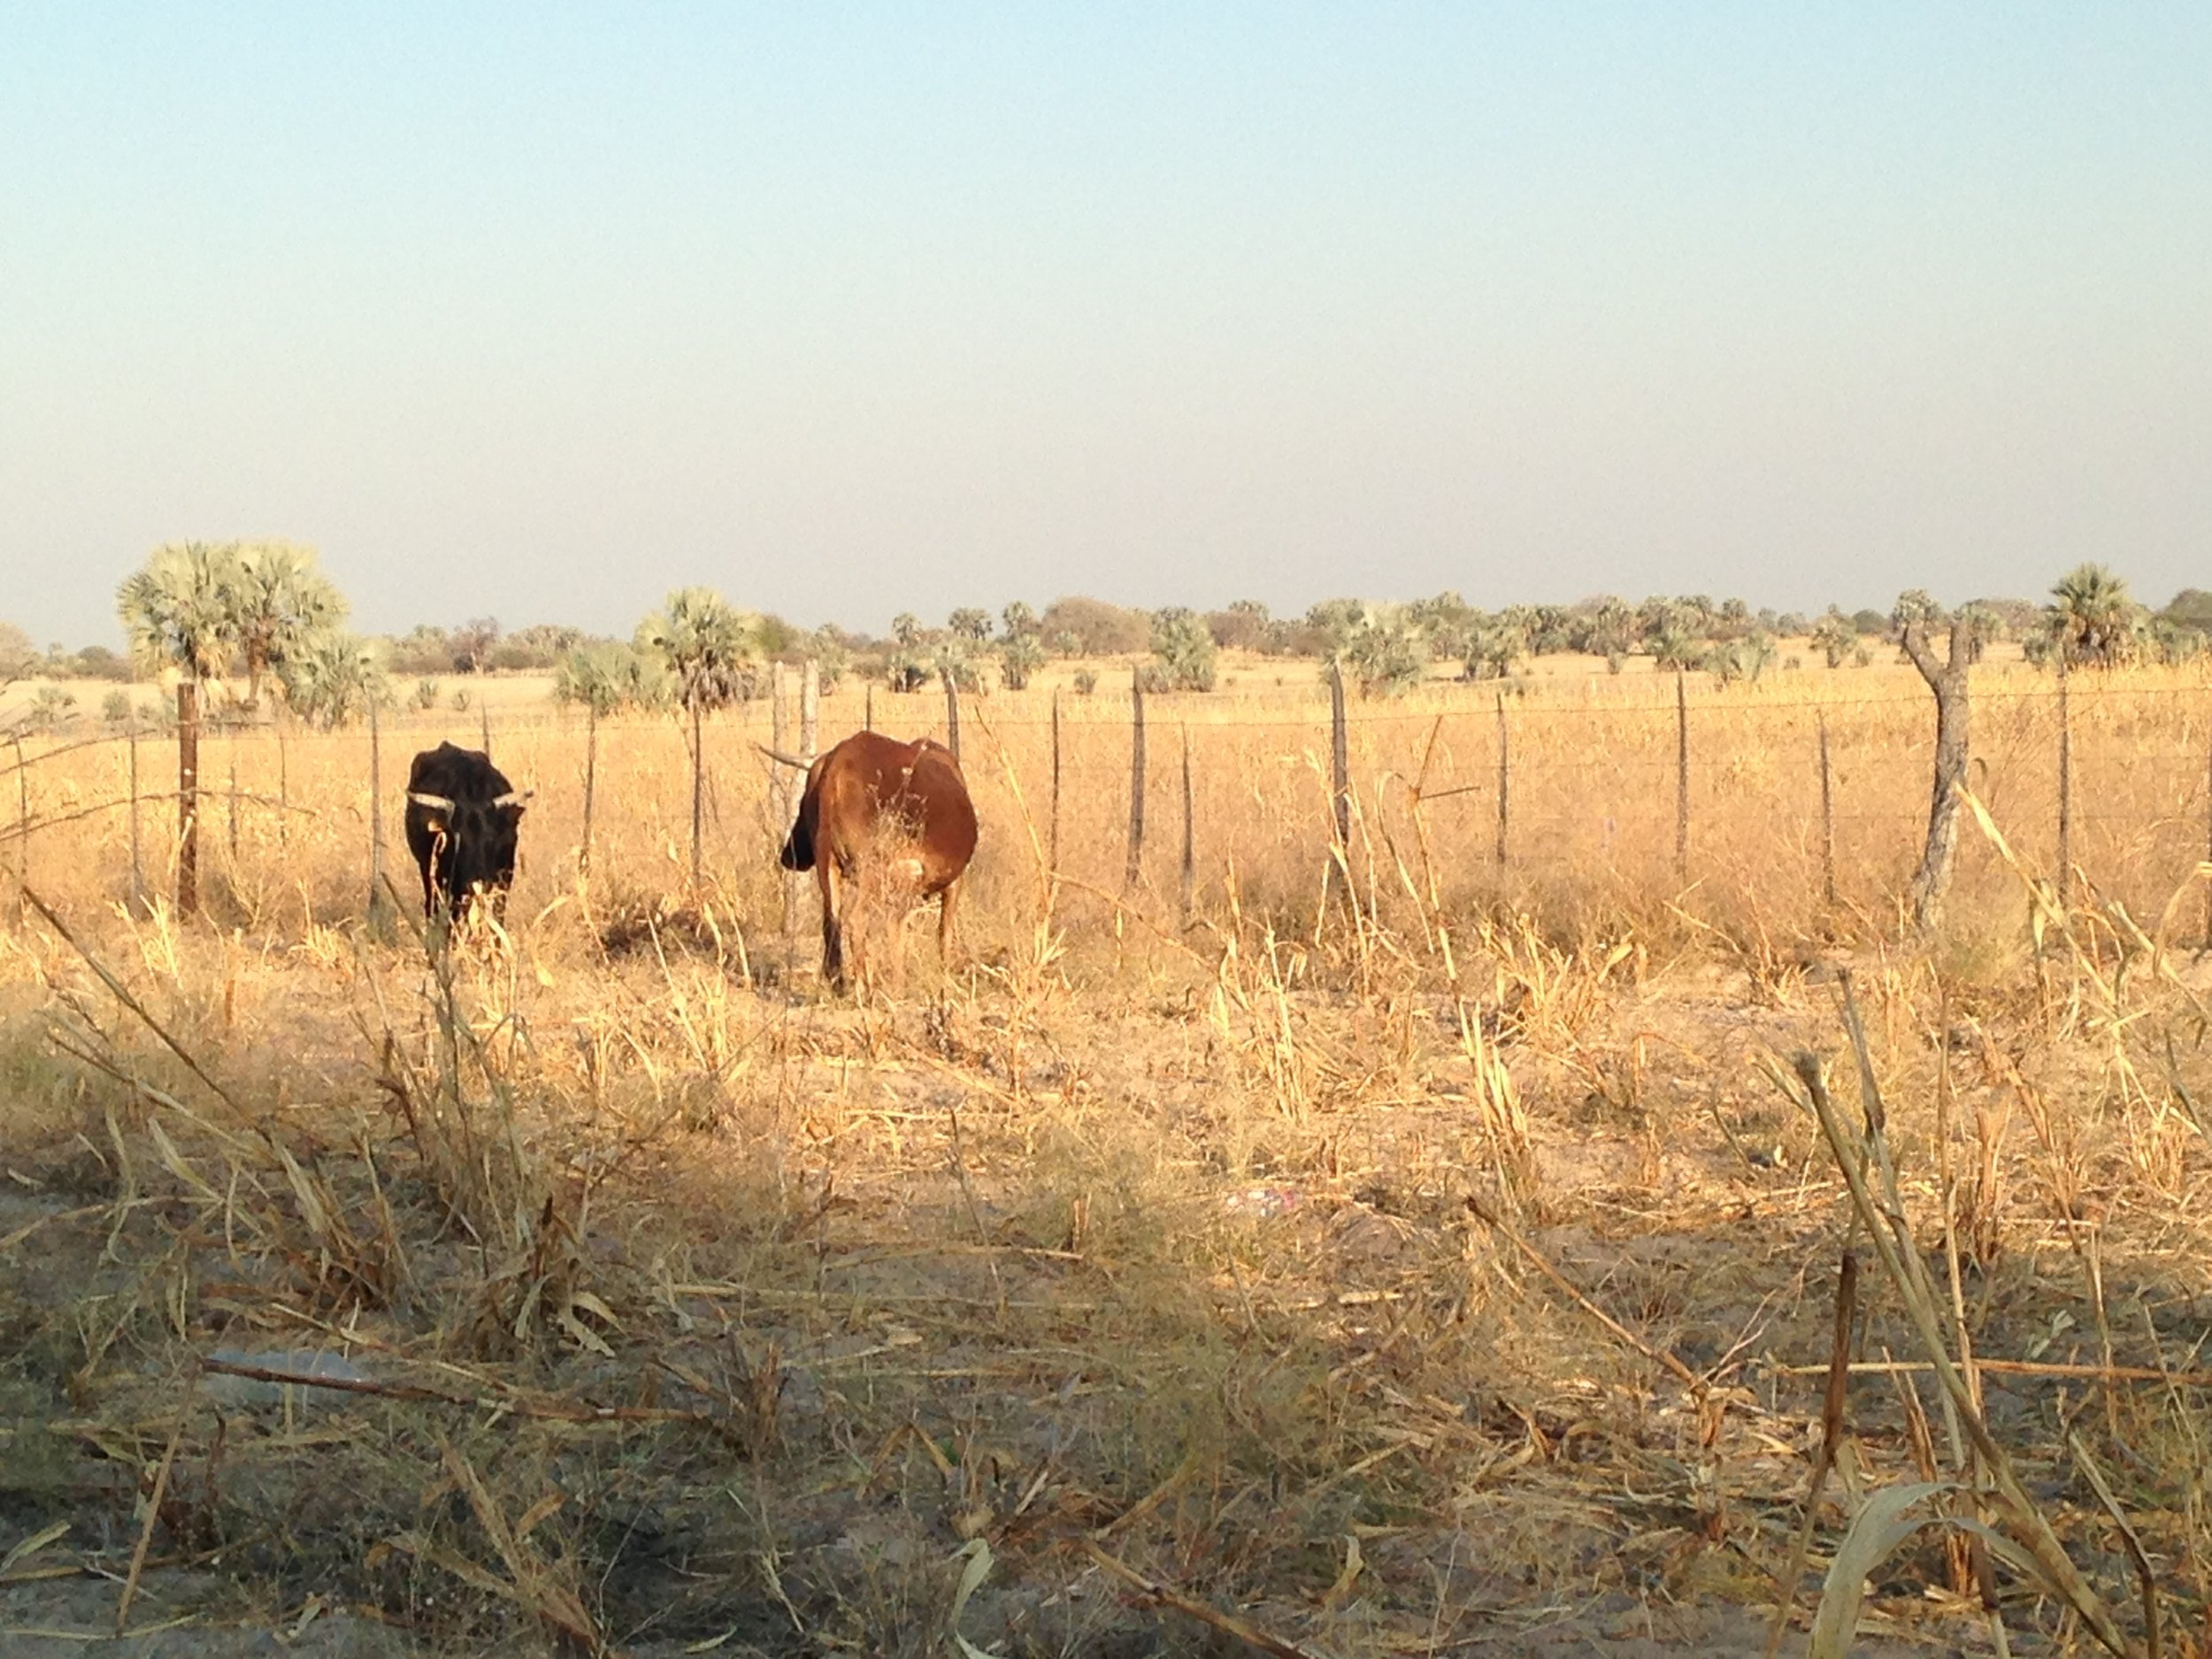 This is a photo of two cows grazing in a field under the sun.